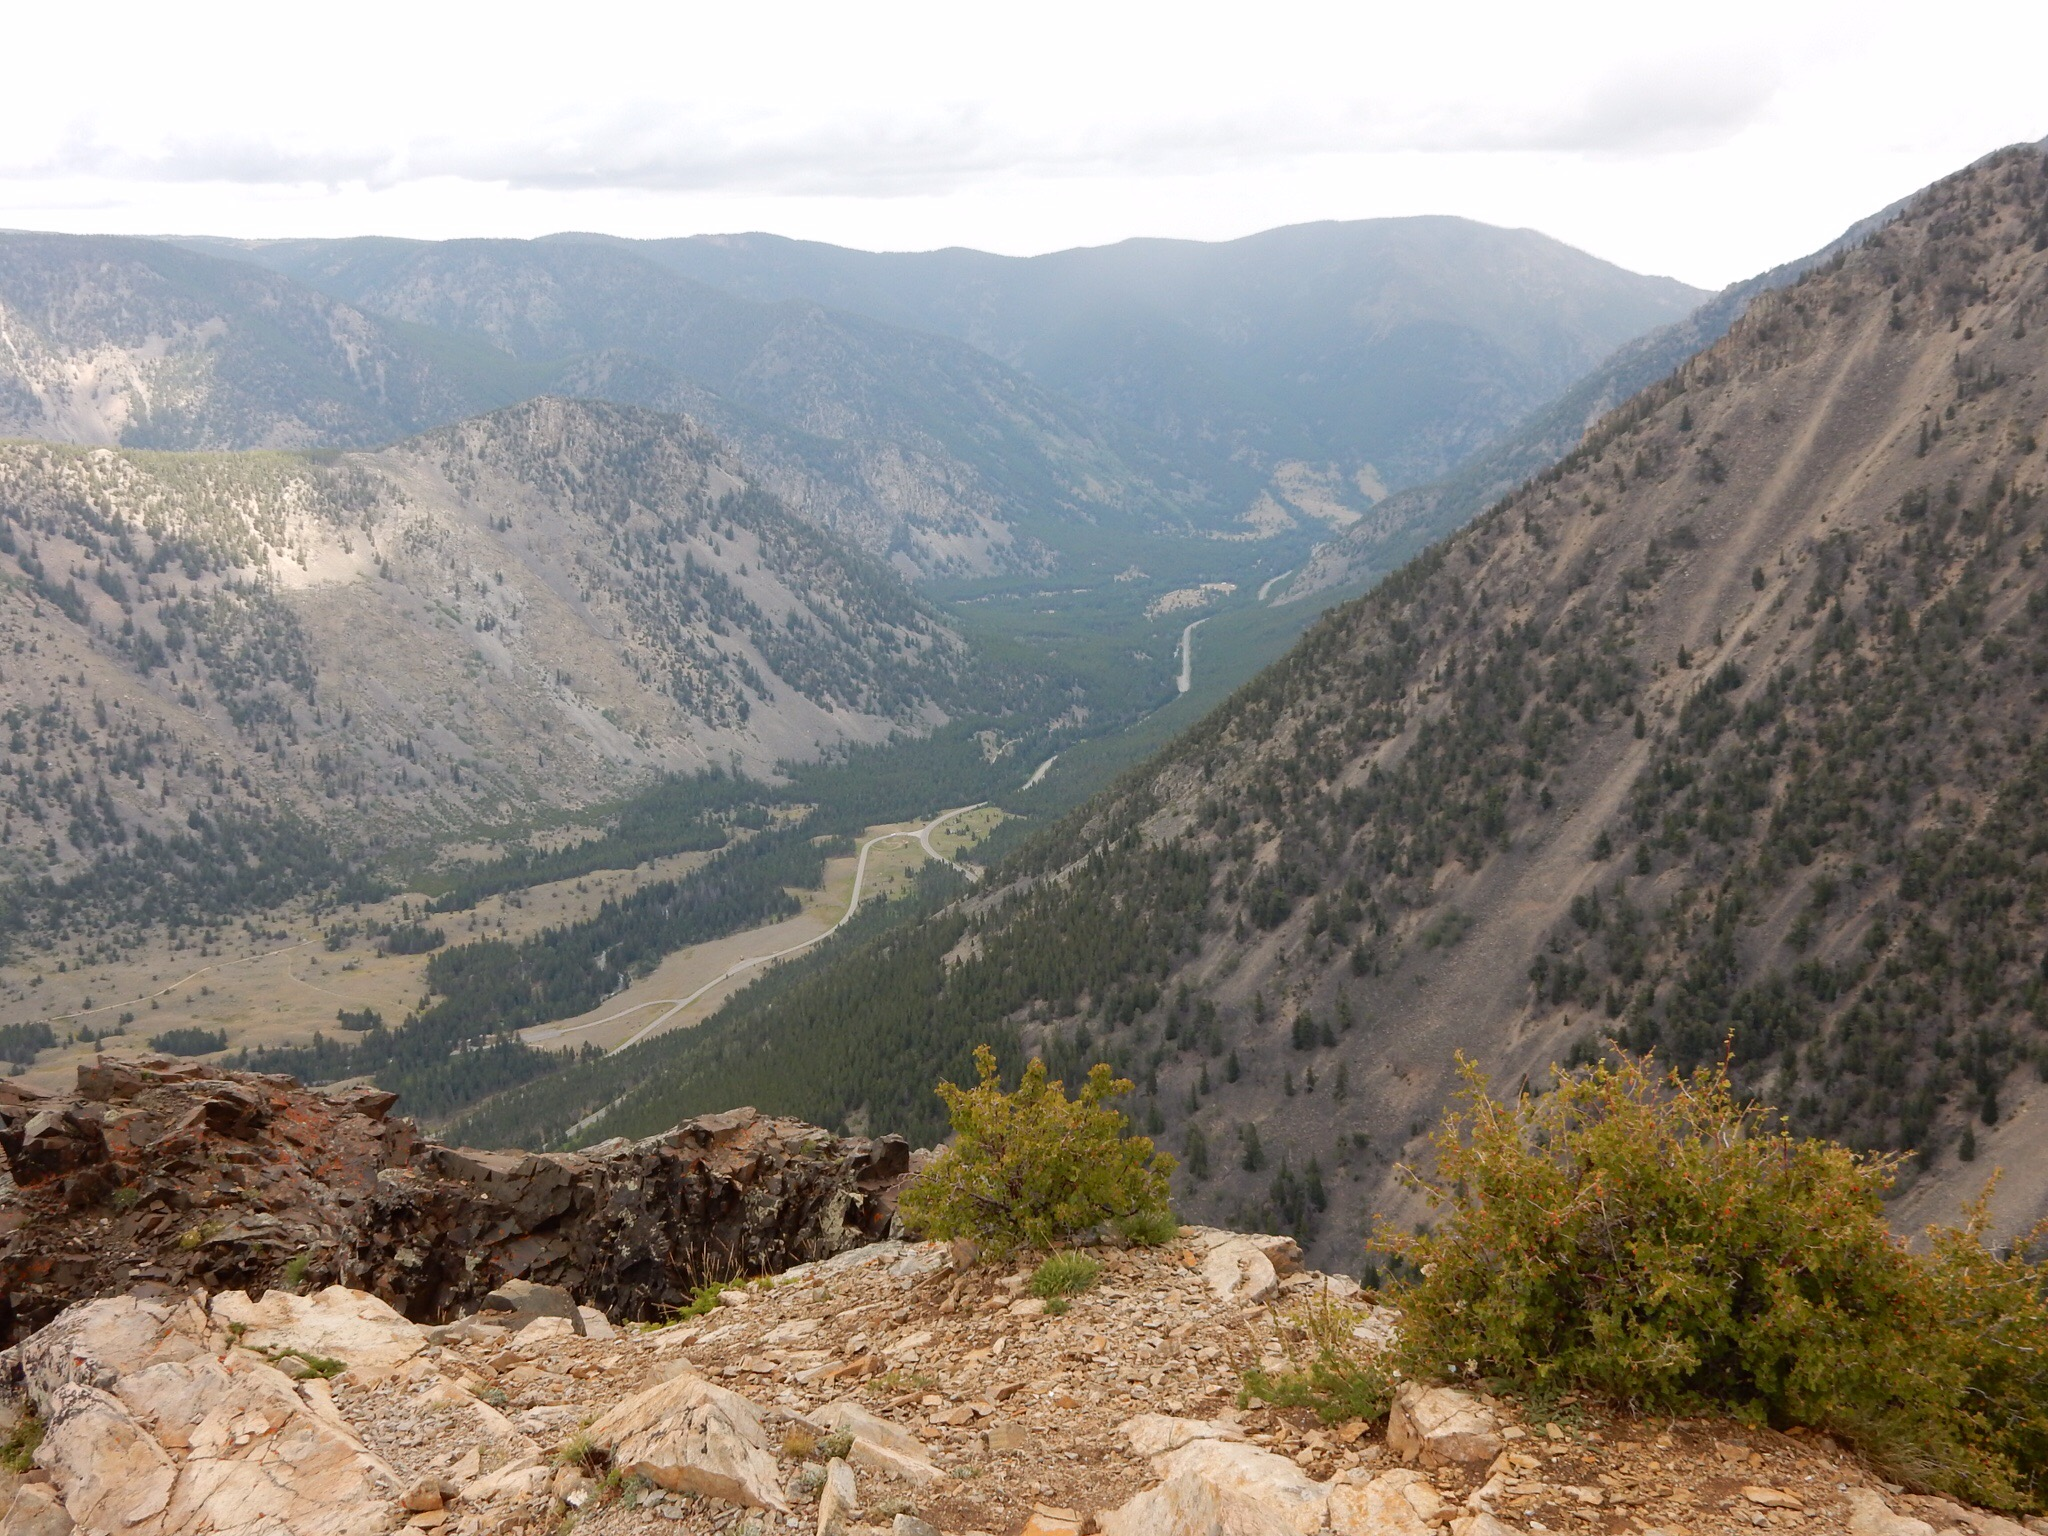 A view towards Red Lodge from a Beartooth Pass overlook.